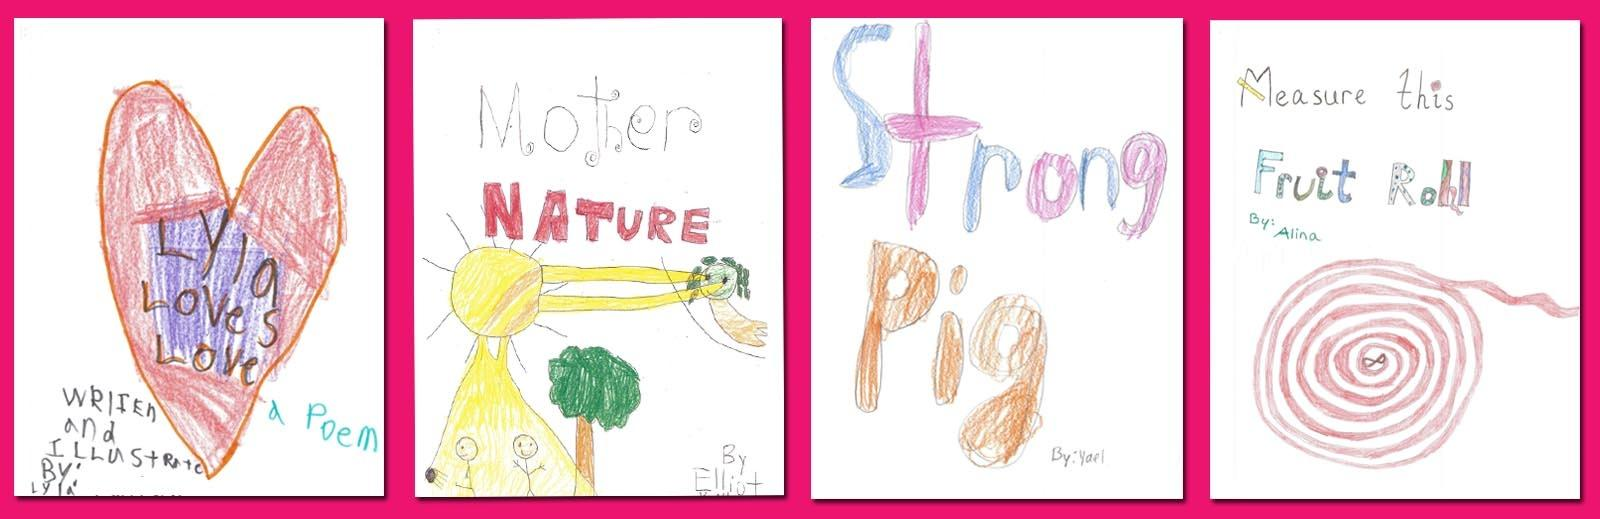 2017 WNED PBS KIDS Writer's Contest First Place Stories